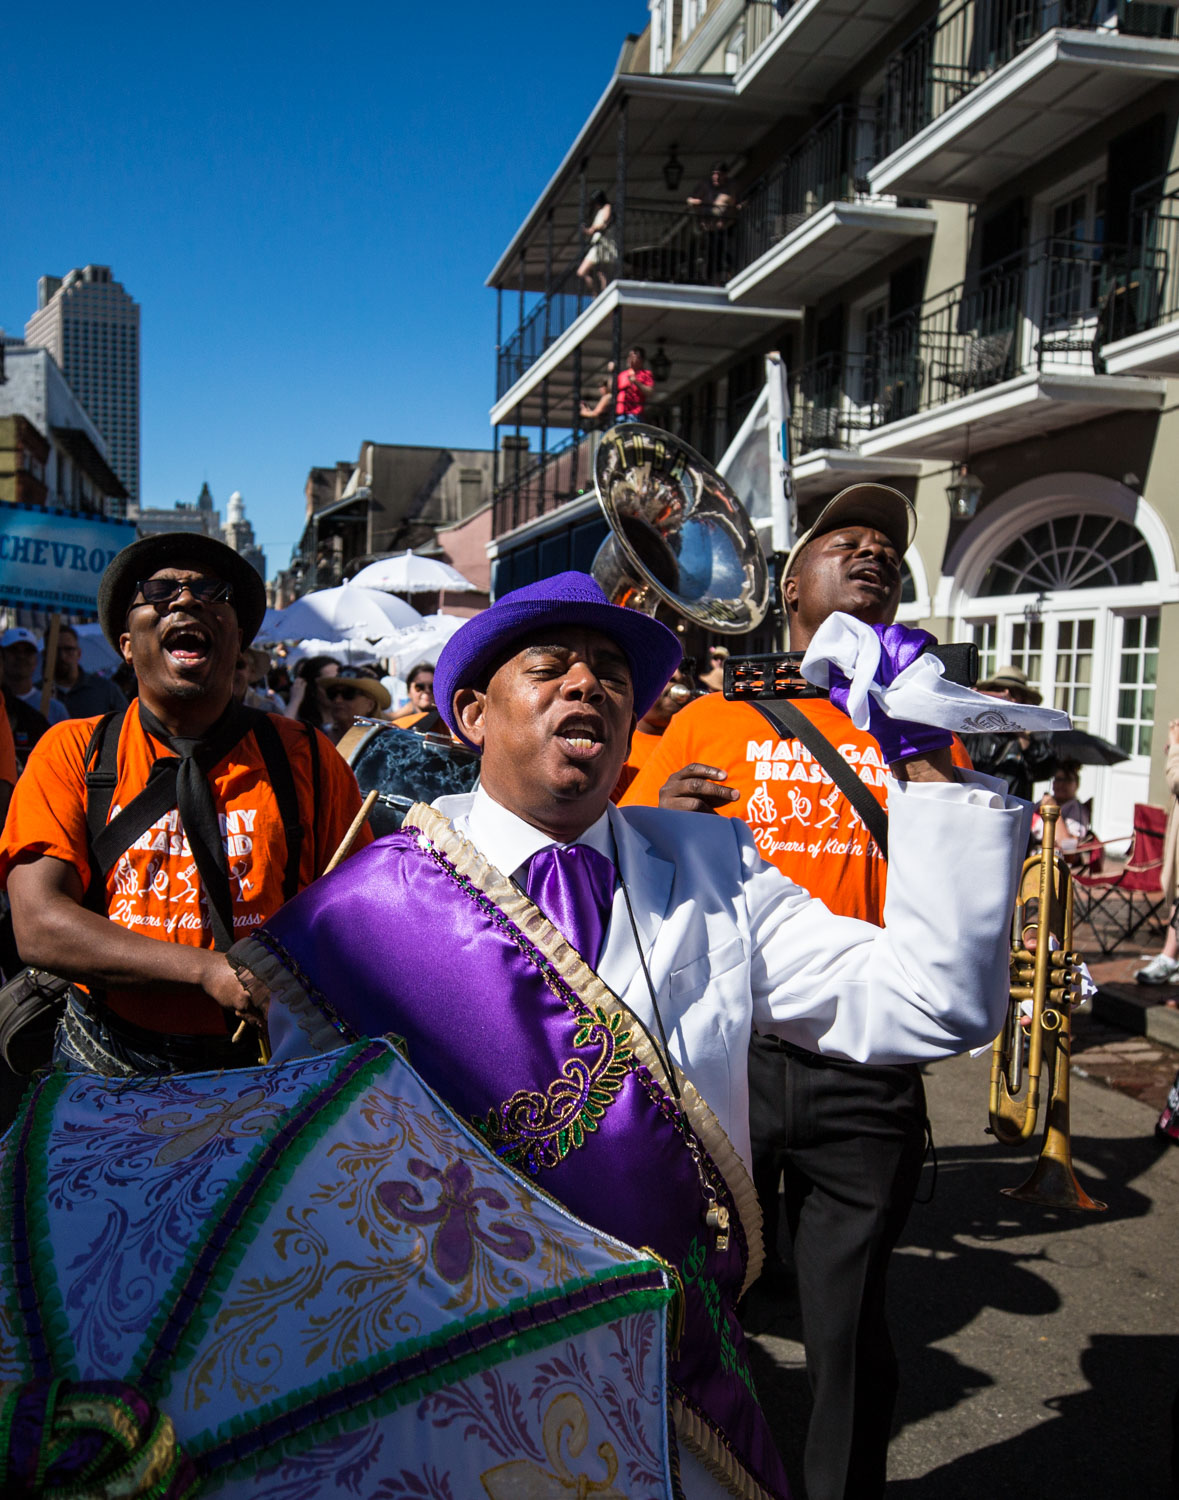 The Mahogany Brass Band marches down Bourbon Street on opening day of the Festival. Band leader Brice Miller sings with trumpet in hand and head raised high.